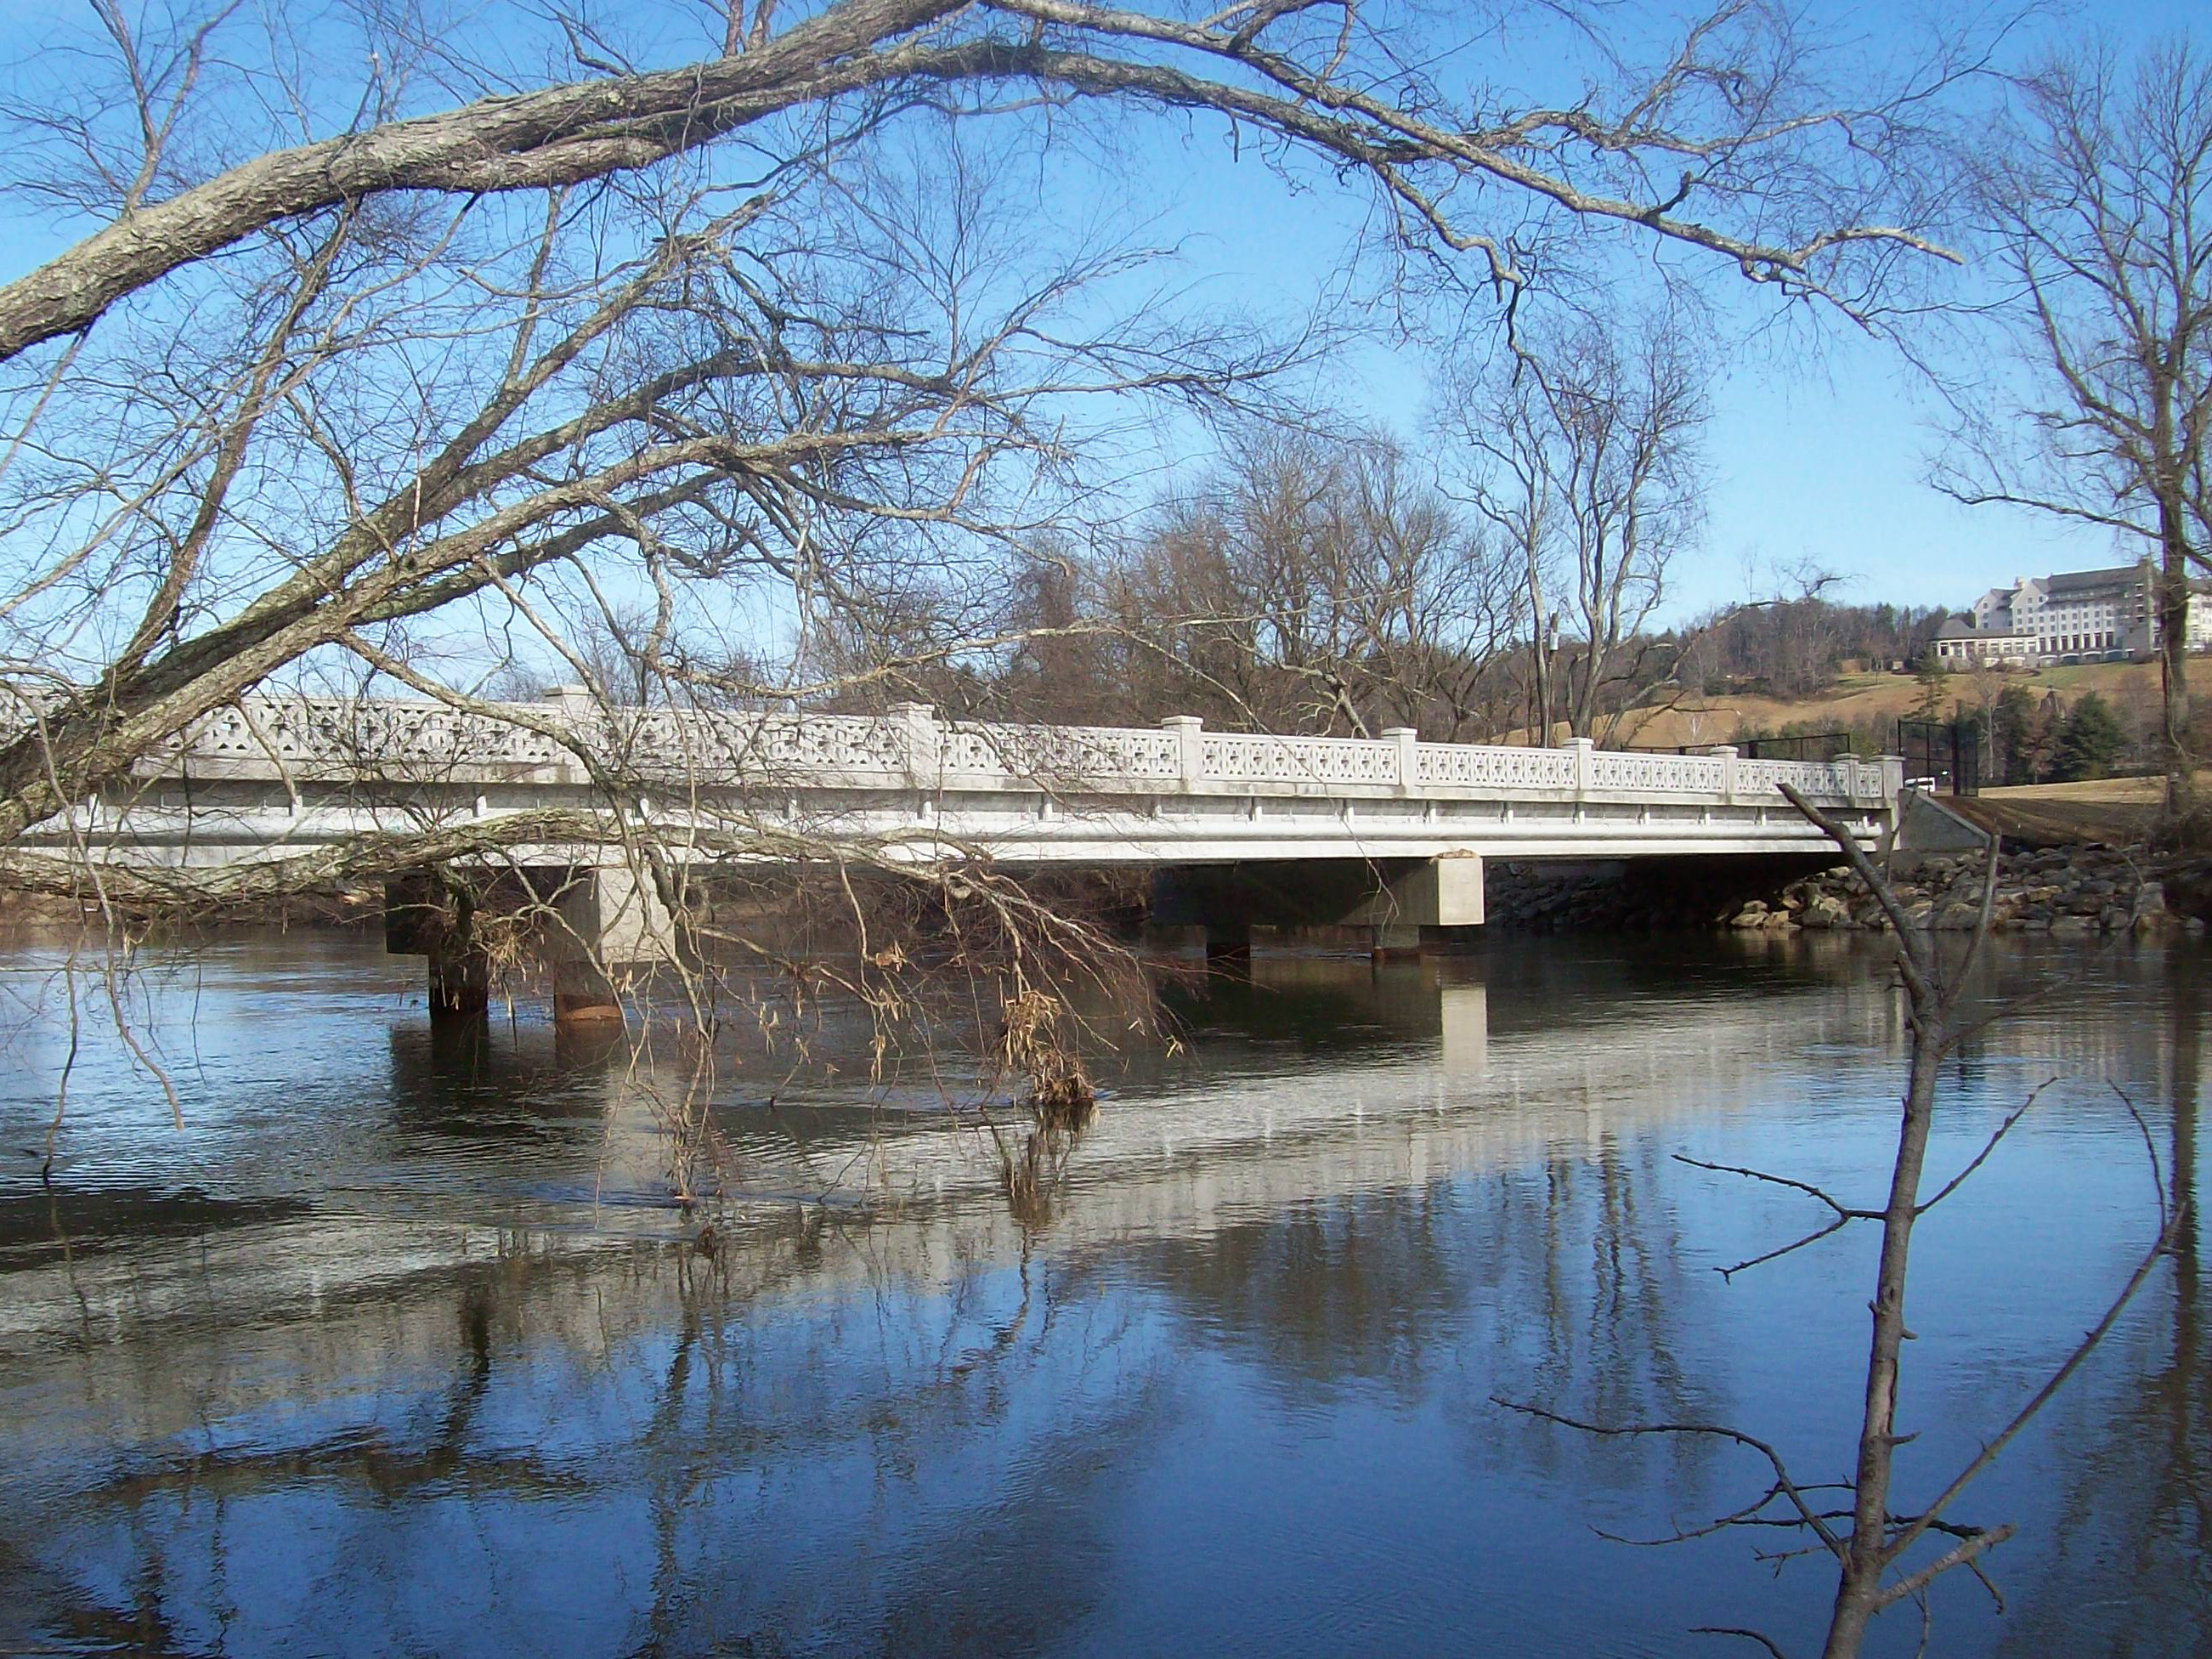 Biltmore Bridge